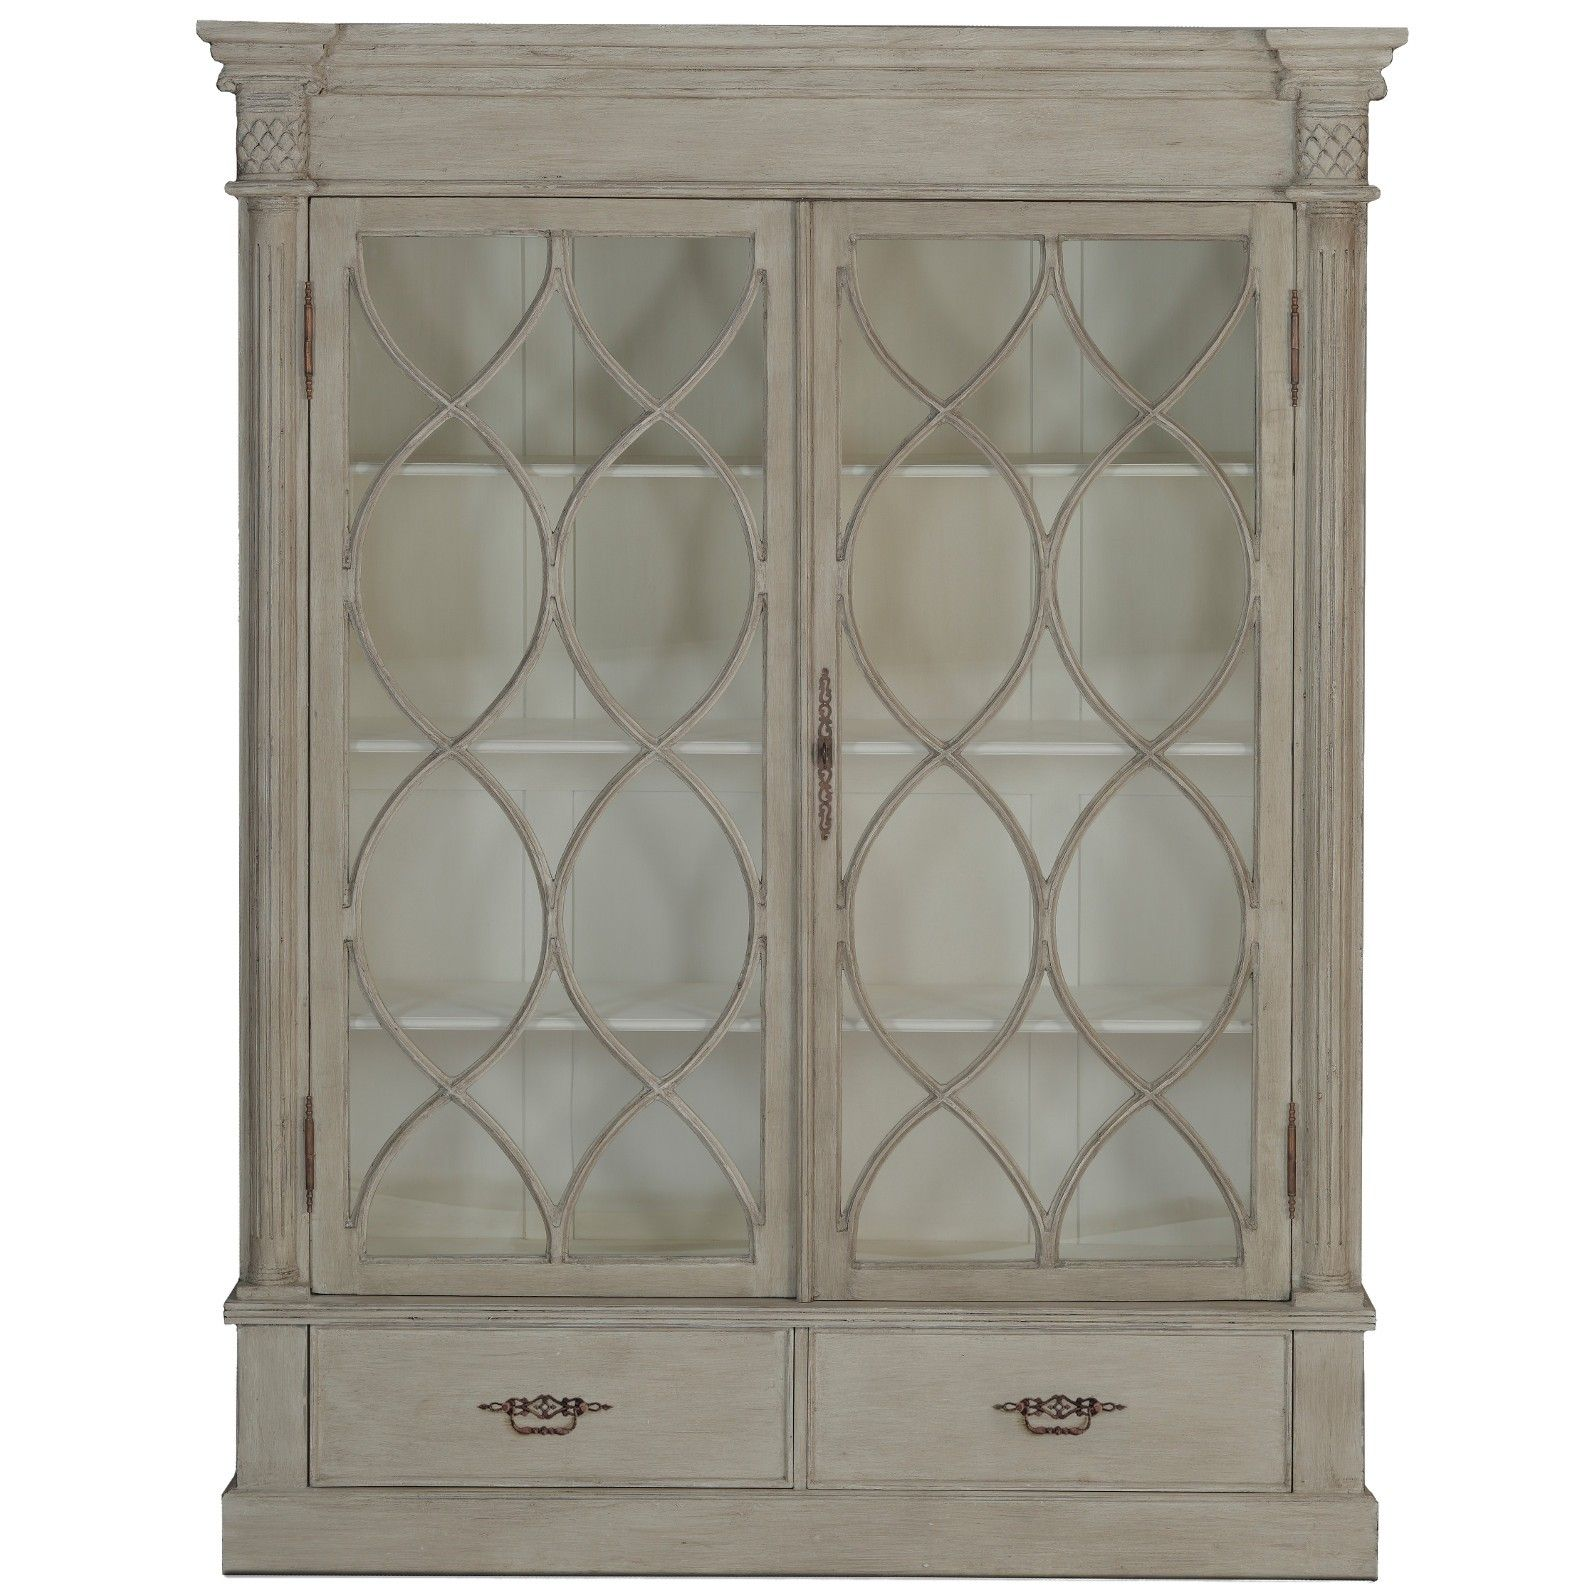 Large French-farmhouse Style China Cabinet. Features